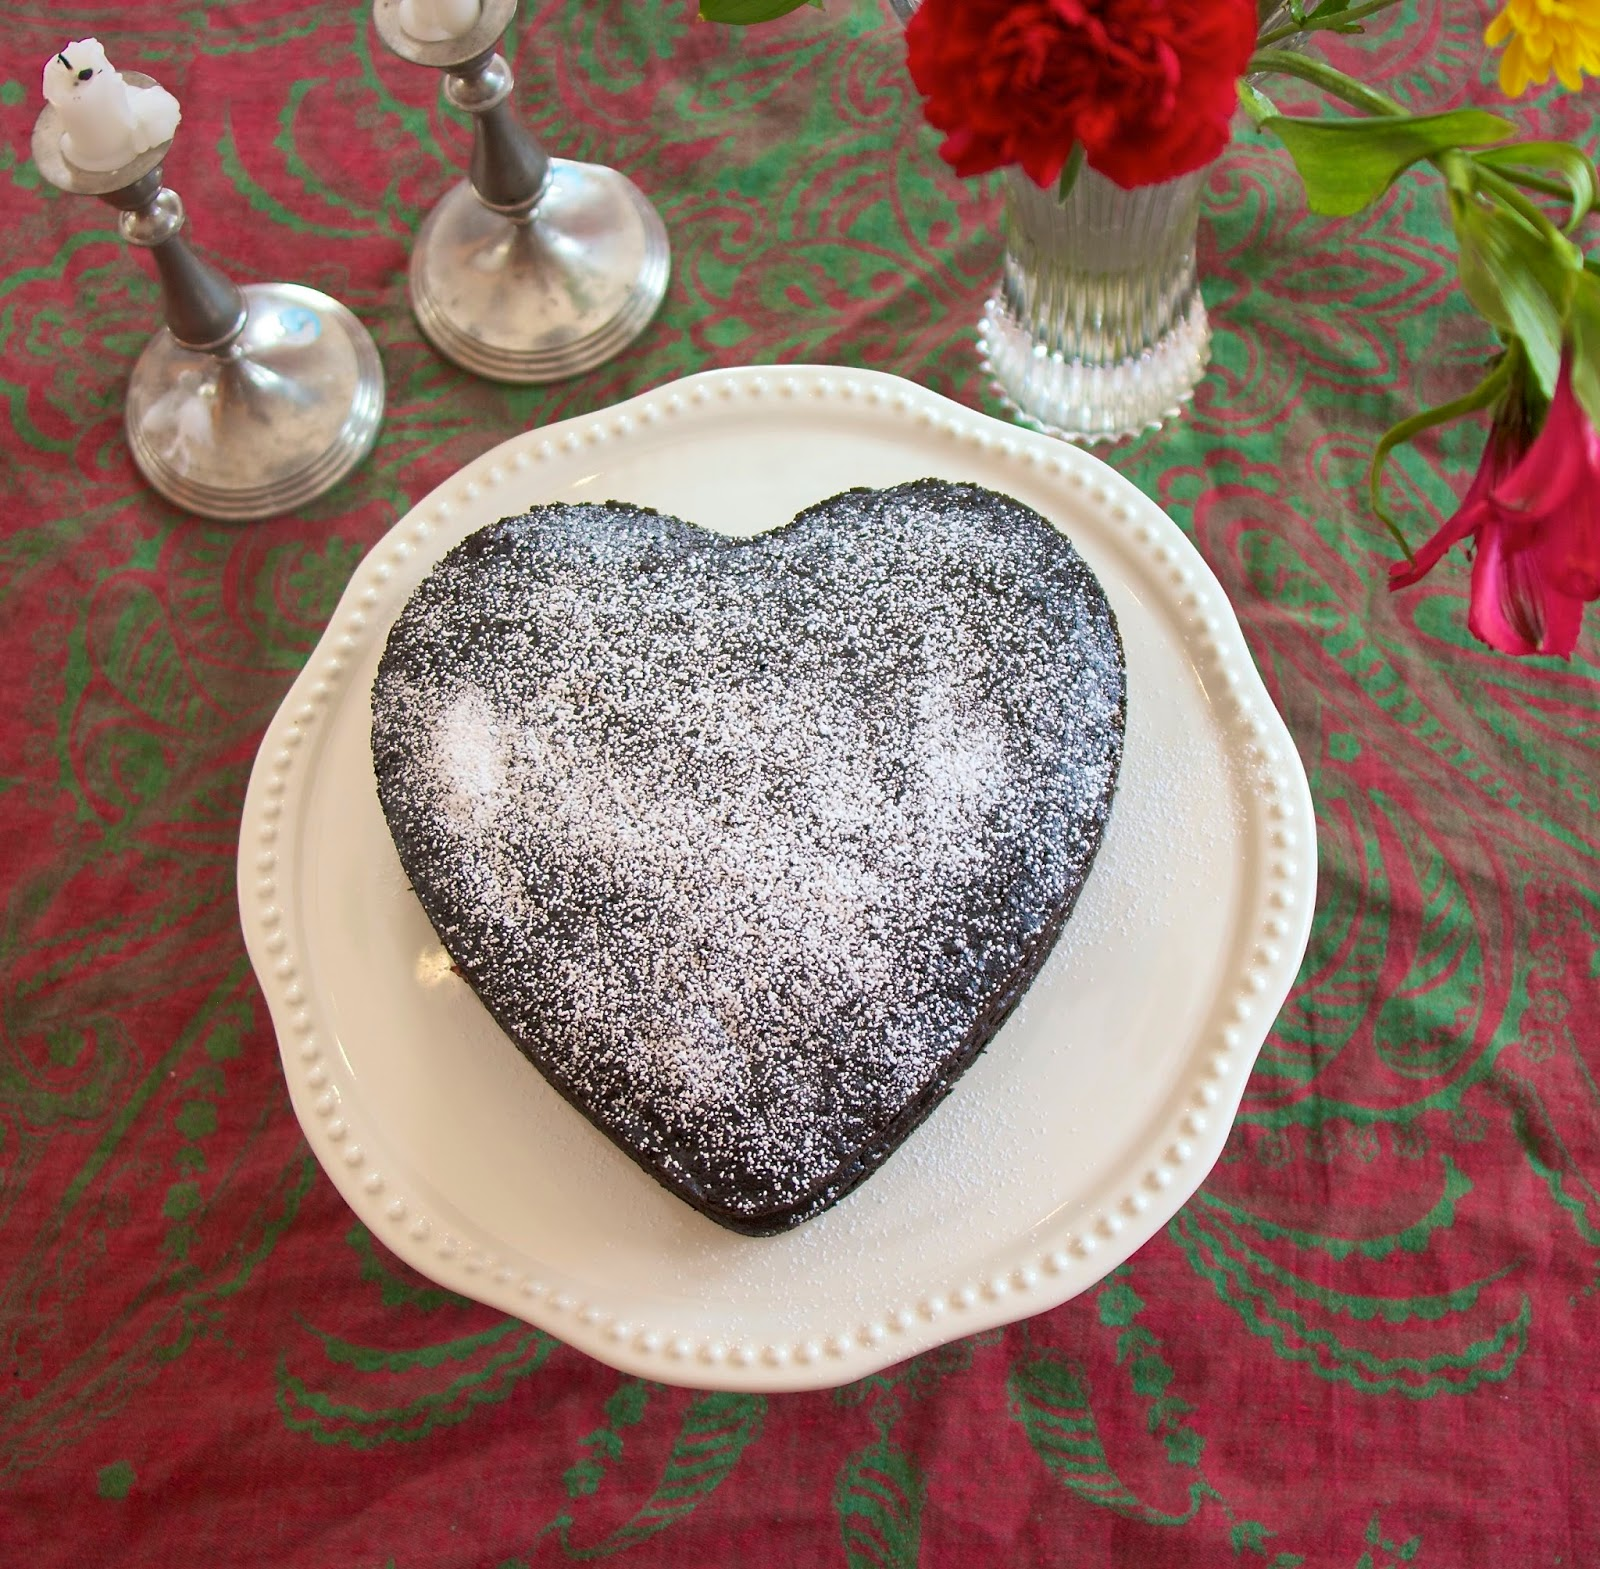 Emergency Chocolate Cake: The Valentine's Day Version: simplelivingeating.com